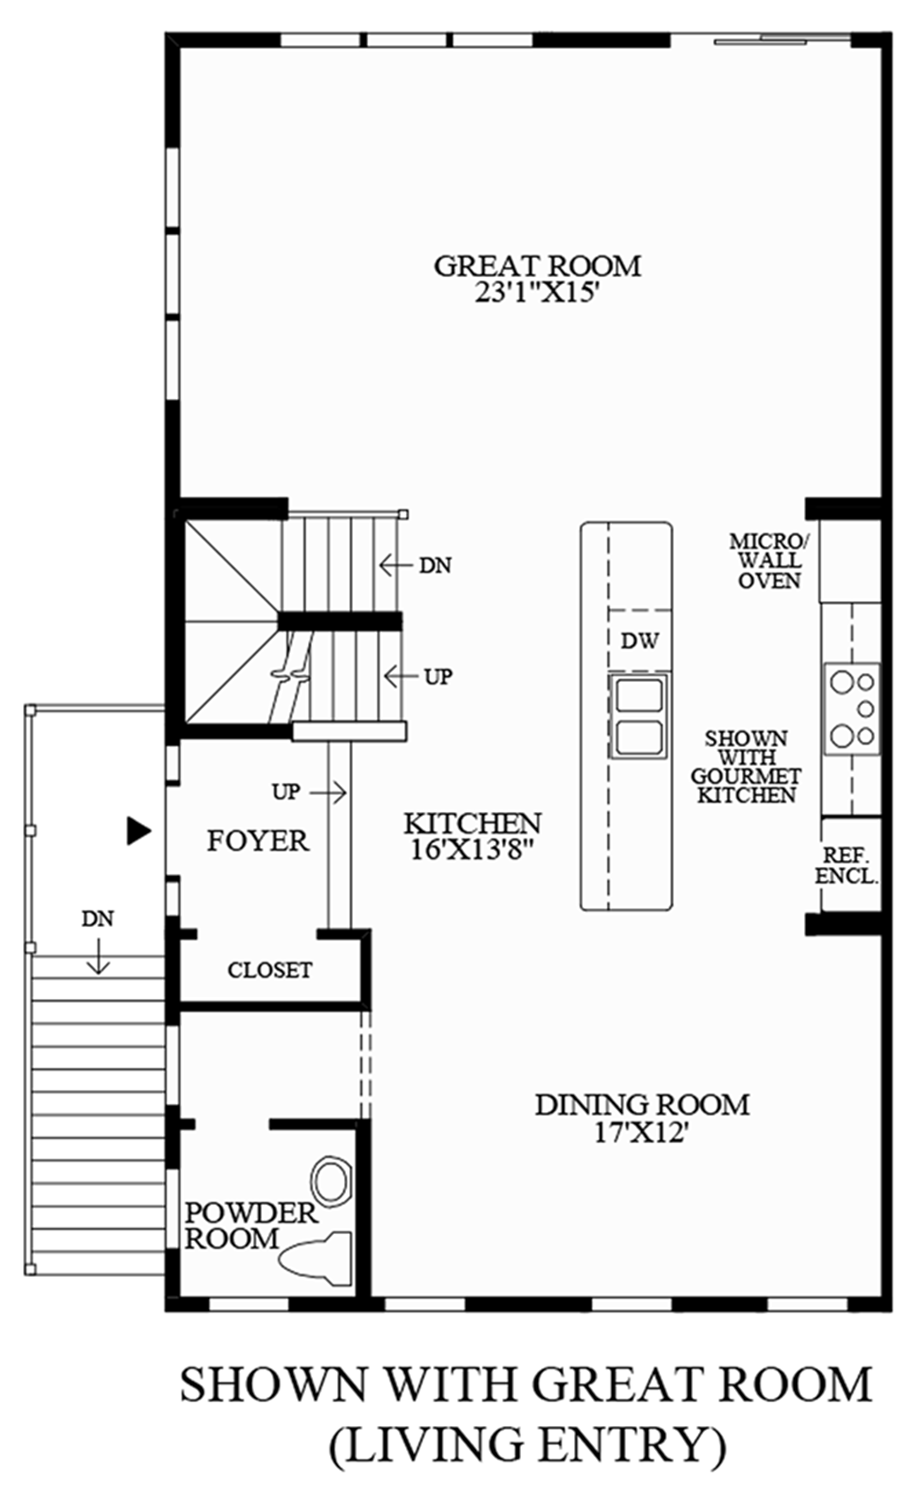 Optional Great Room (Living Level Entry) Floor Plan